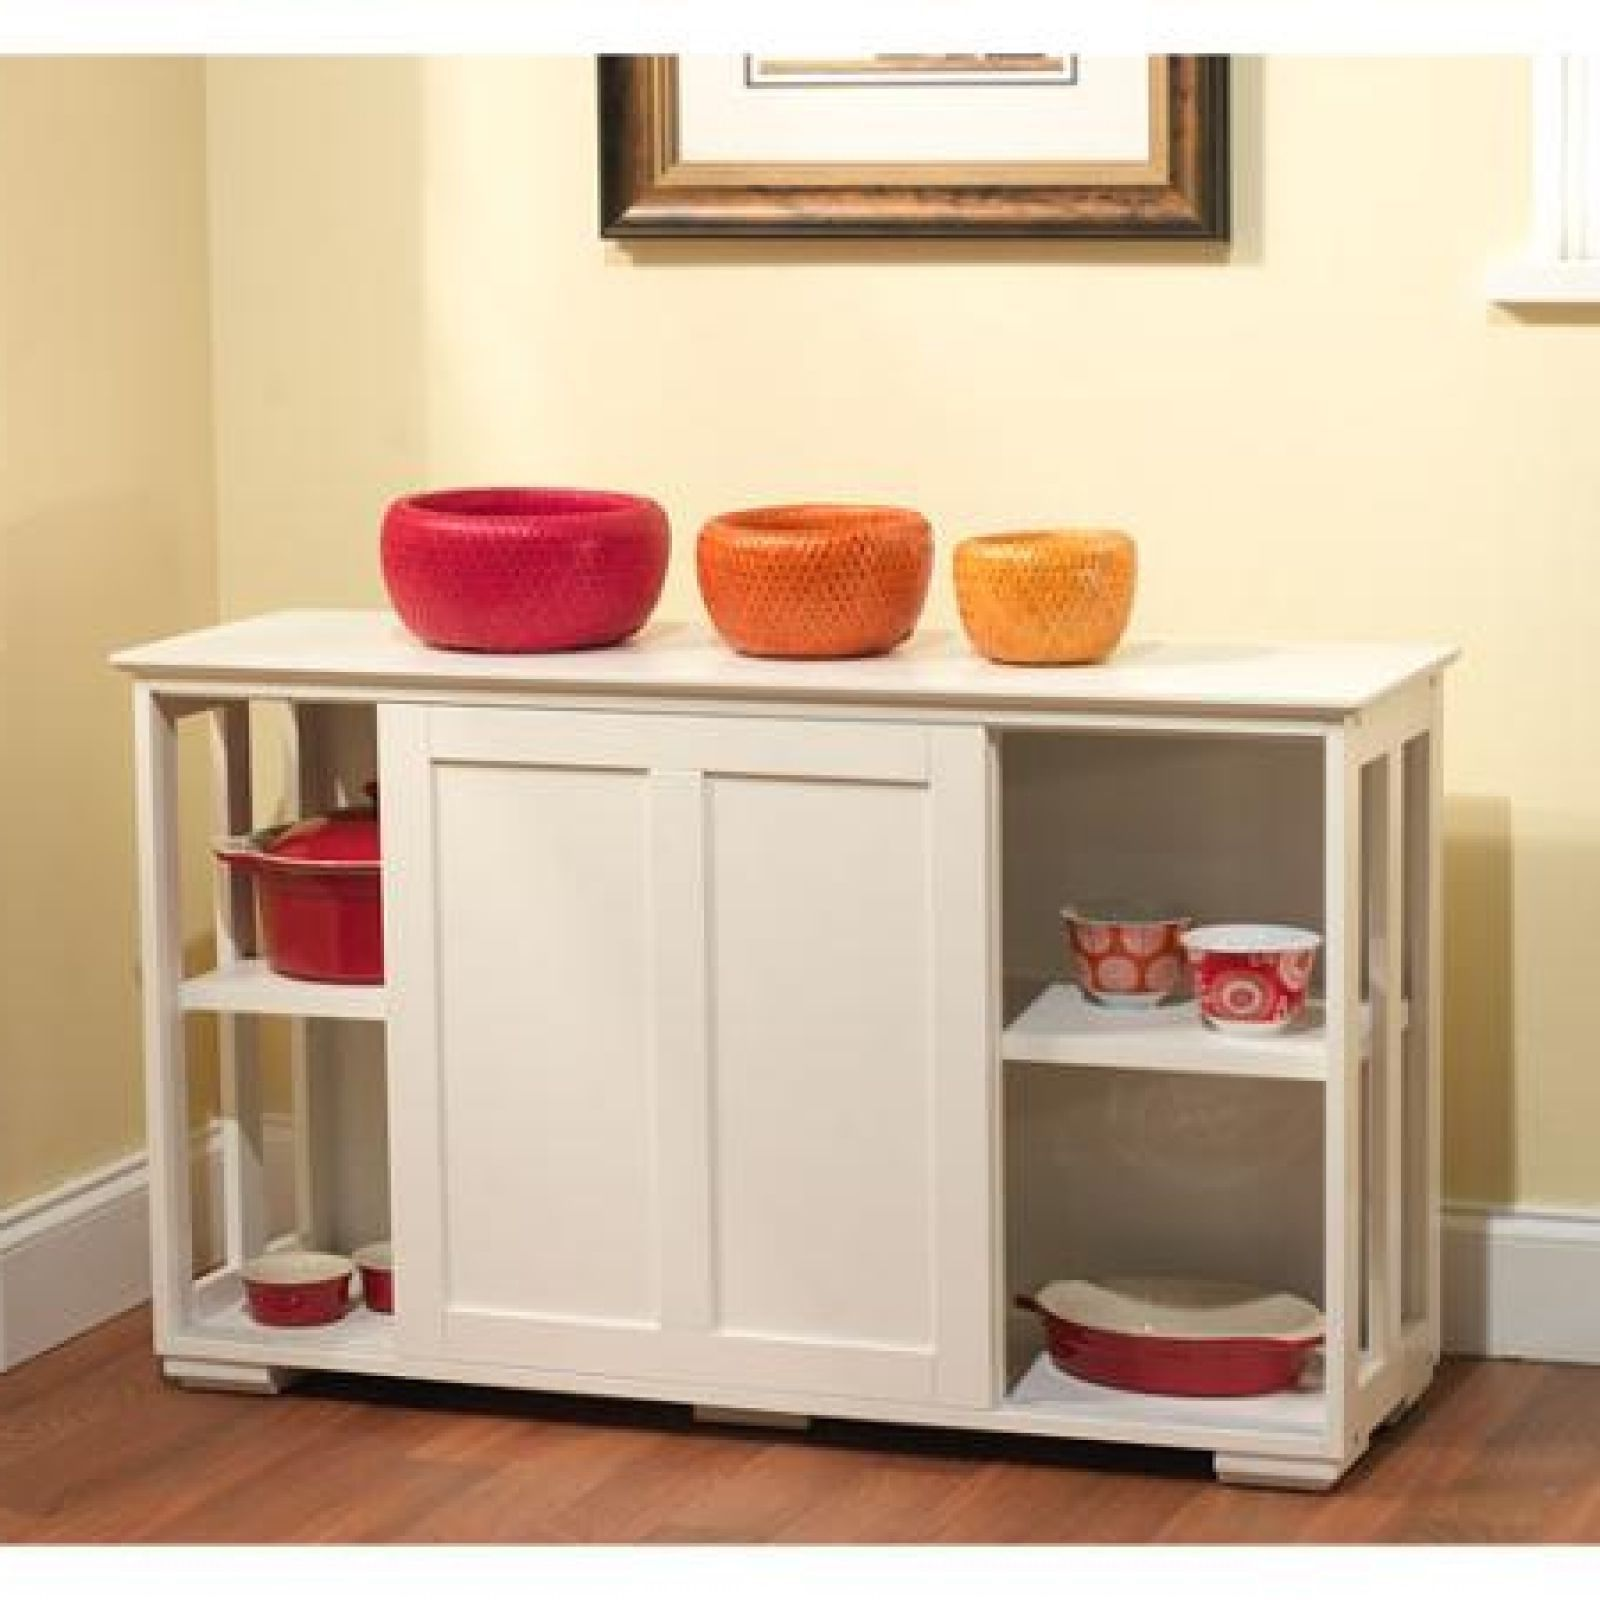 Click picture to enlarge   Wood storage cabinets, White ...